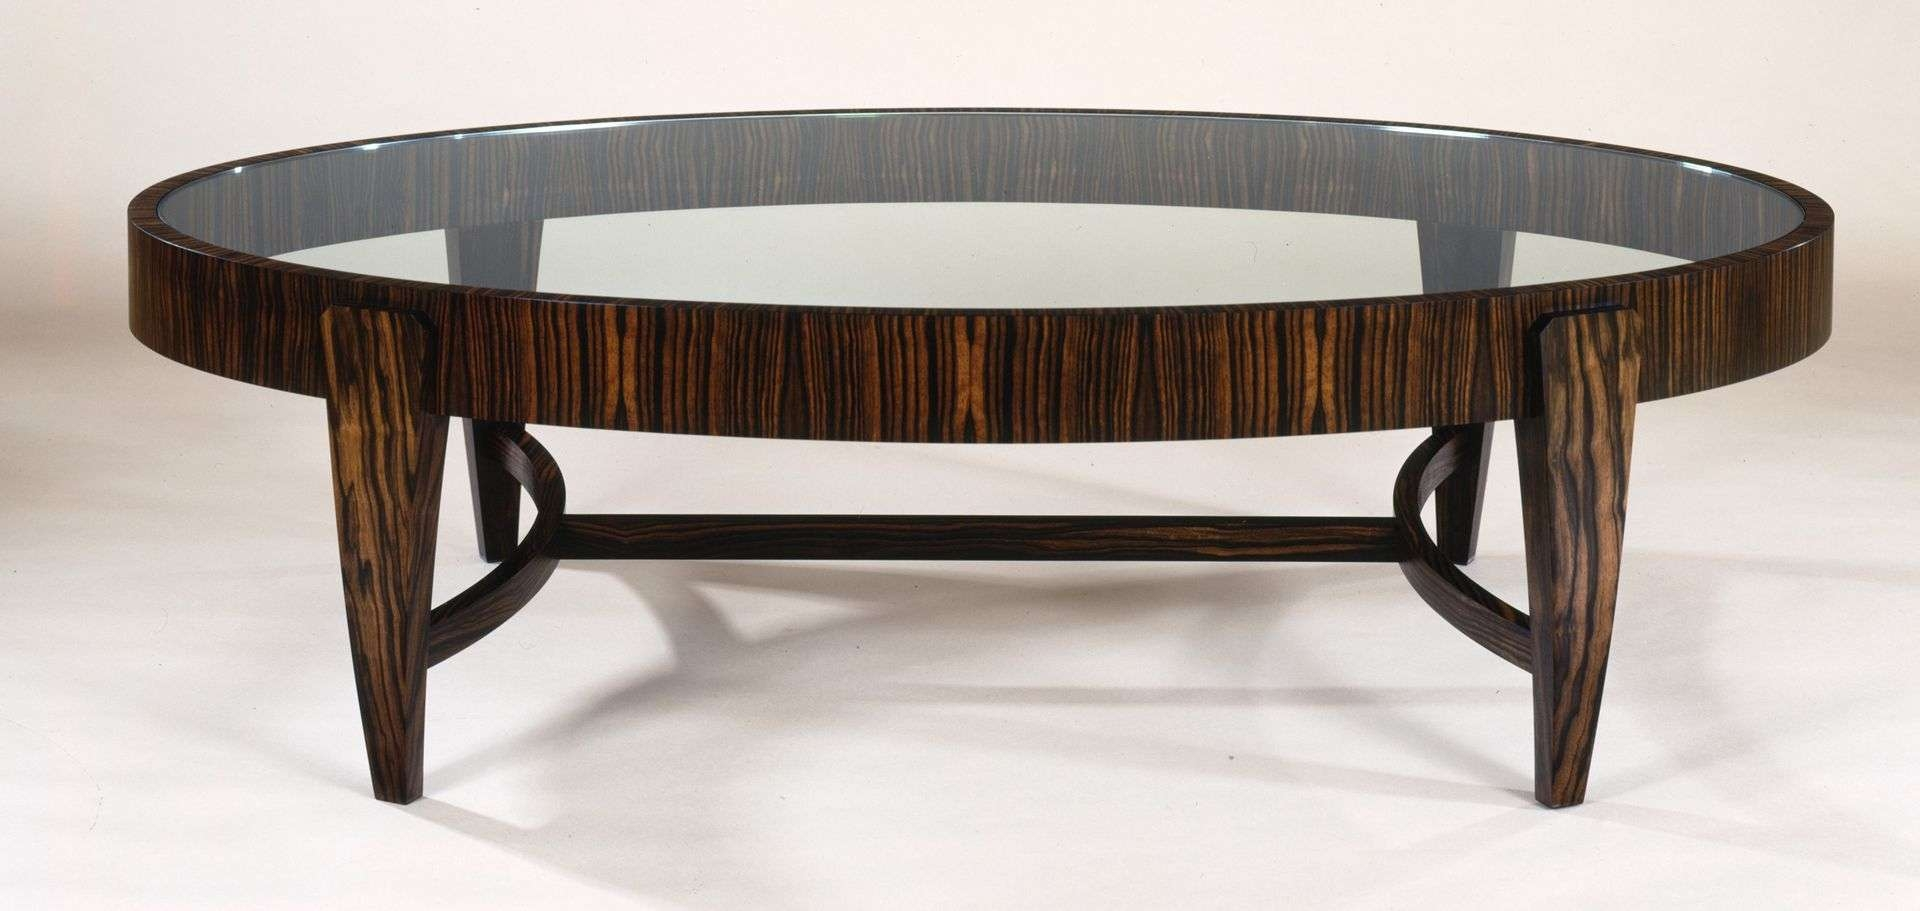 Oval Glass Coffee Table Metal Frame In Outstanding Design In Black With Recent Black Oval Coffee Tables (Gallery 17 of 20)